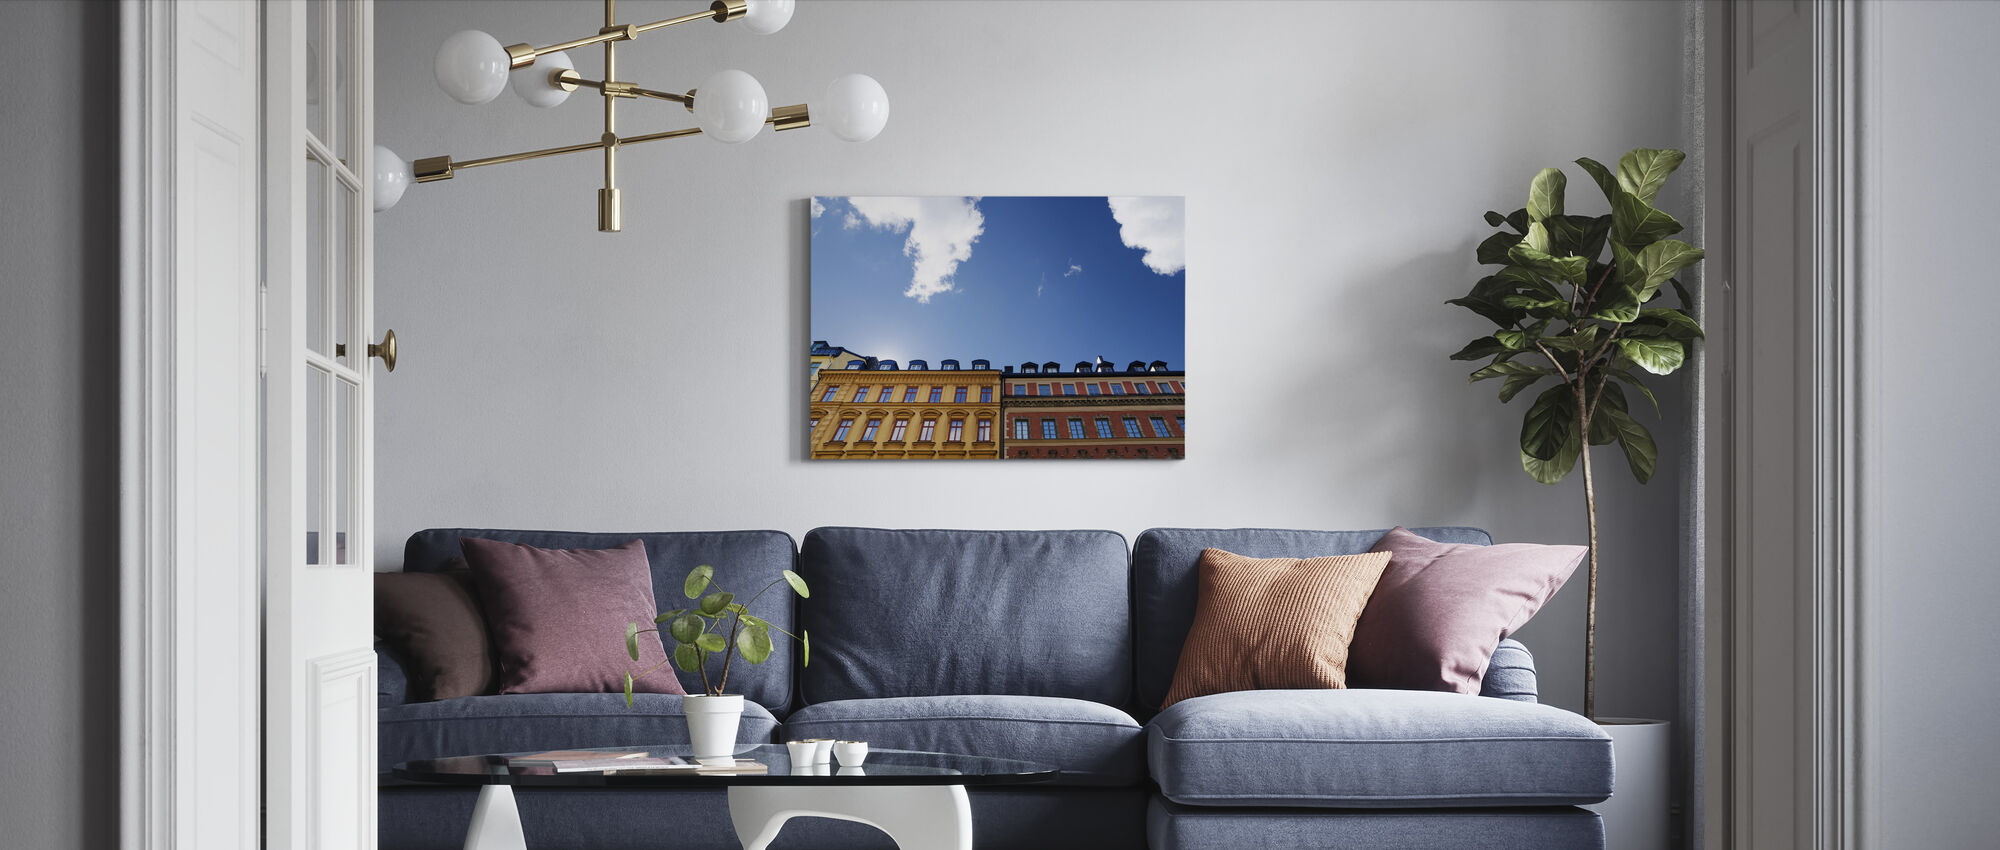 Vivid Colors of Buildings in Stockholm - Canvas print - Living Room